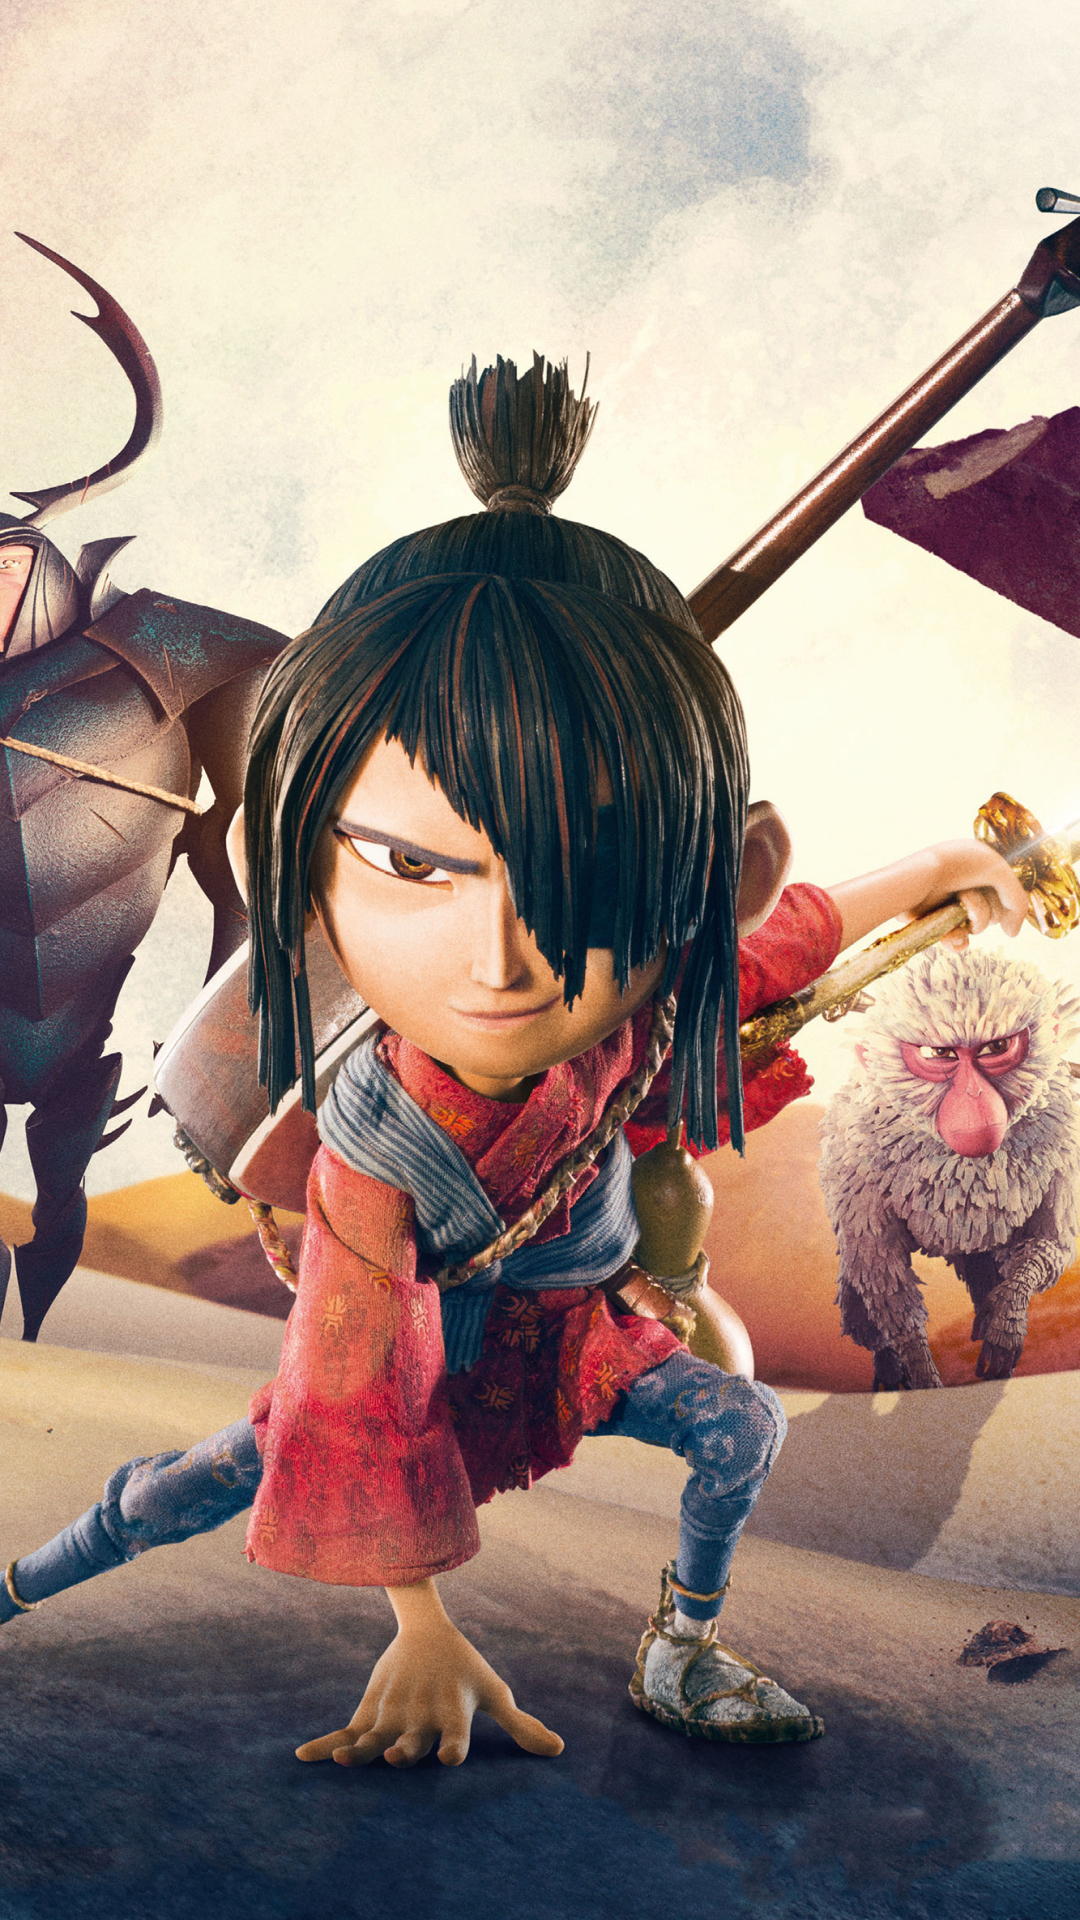 Movie Kubo And The Two Strings 1080x1920 Wallpaper Id 711848